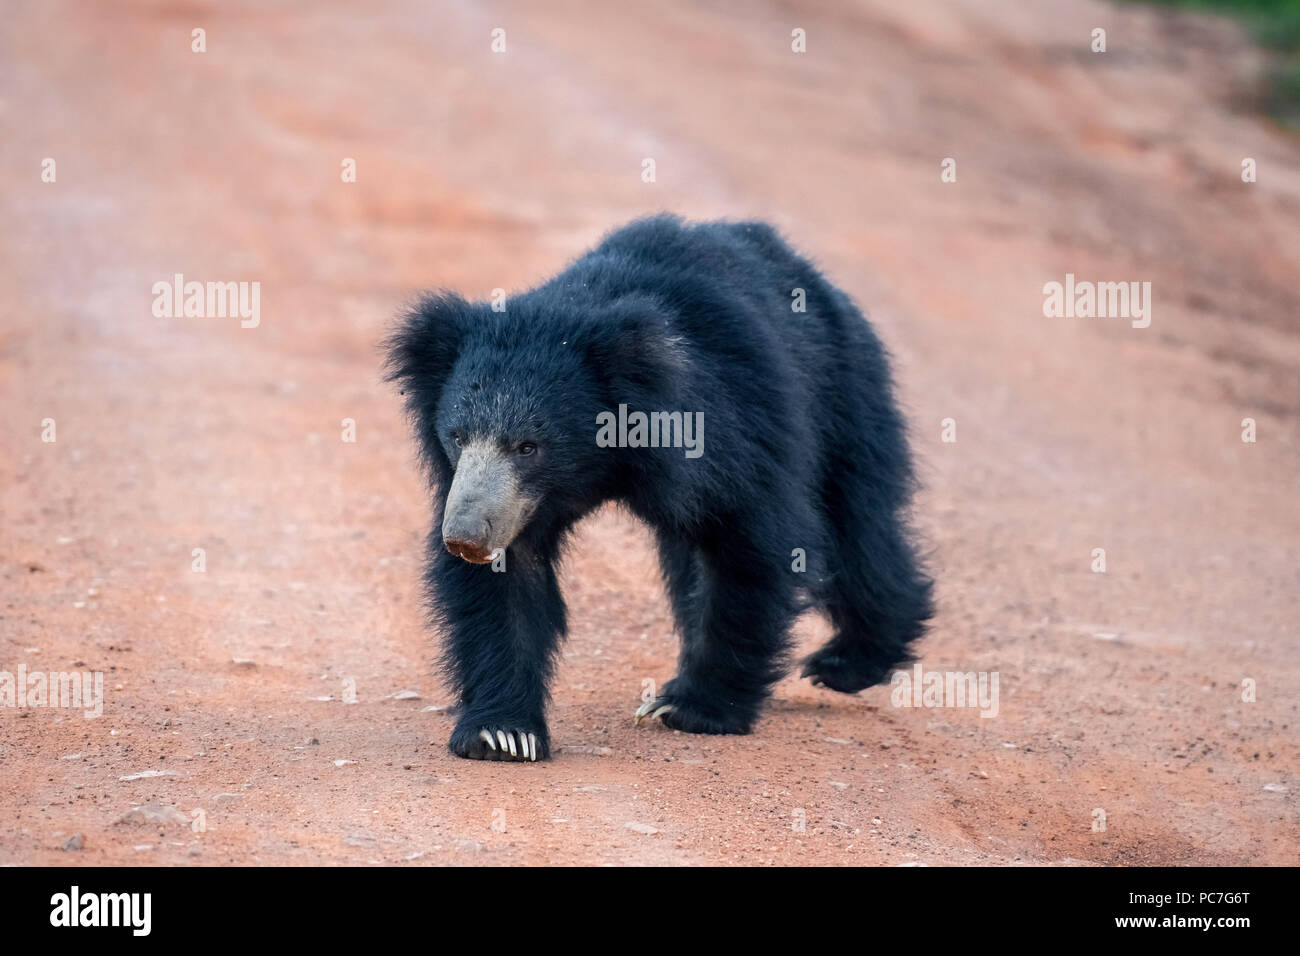 Sri Lankan bear in the jungle - Stock Image